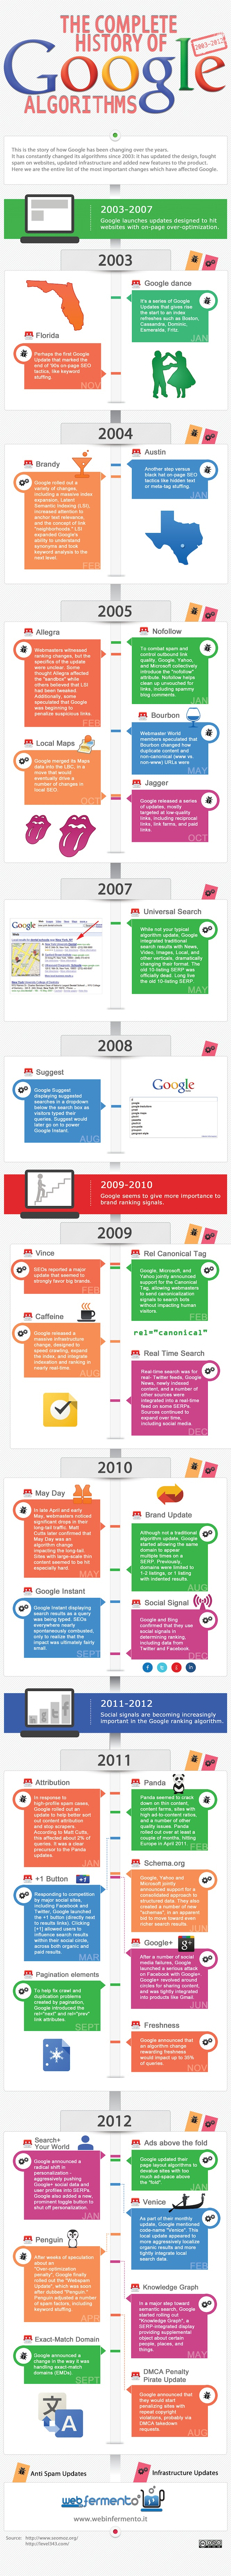 The-complete-history-of-google-algorithms